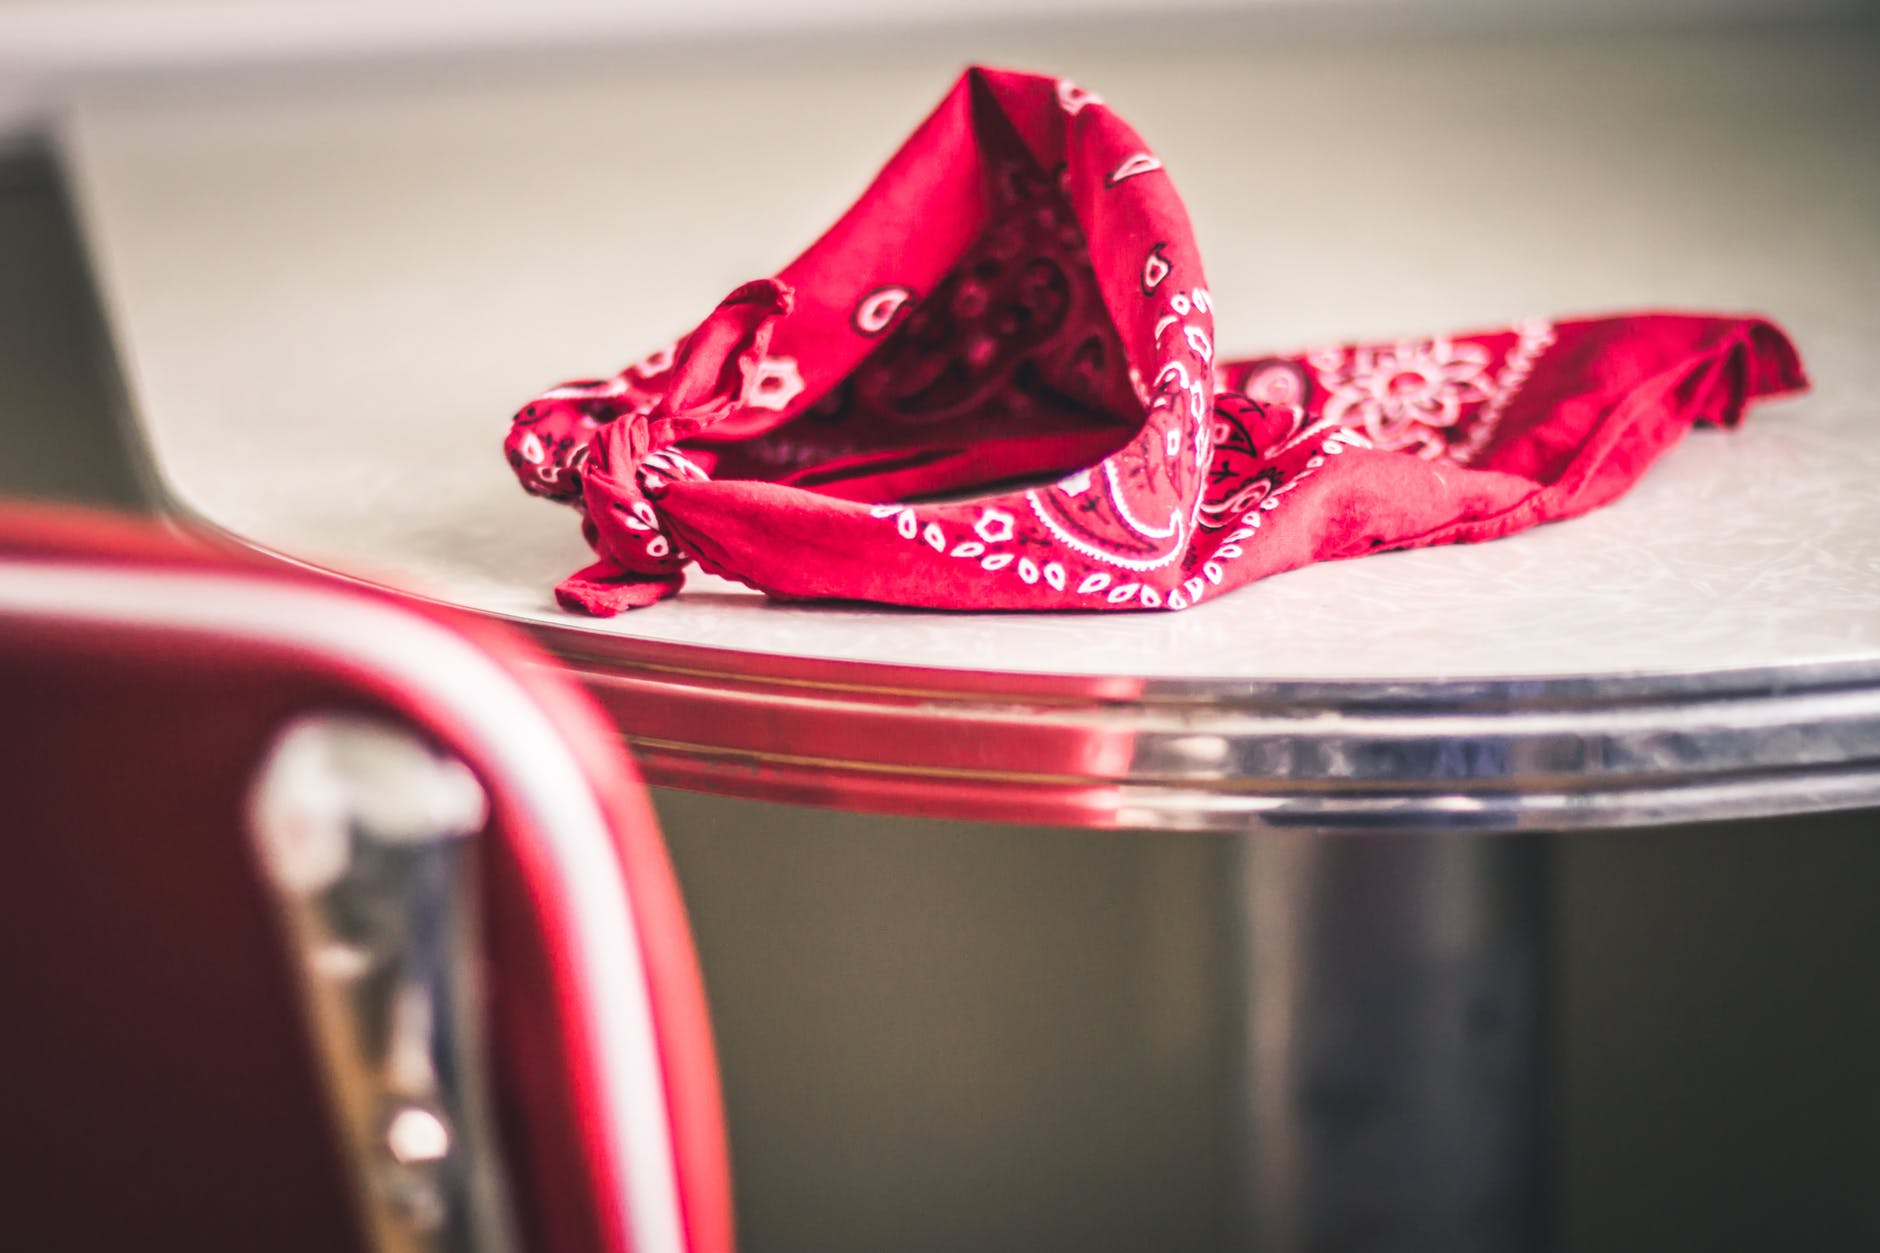 Handkerchief-not-to-give-as-a-gift